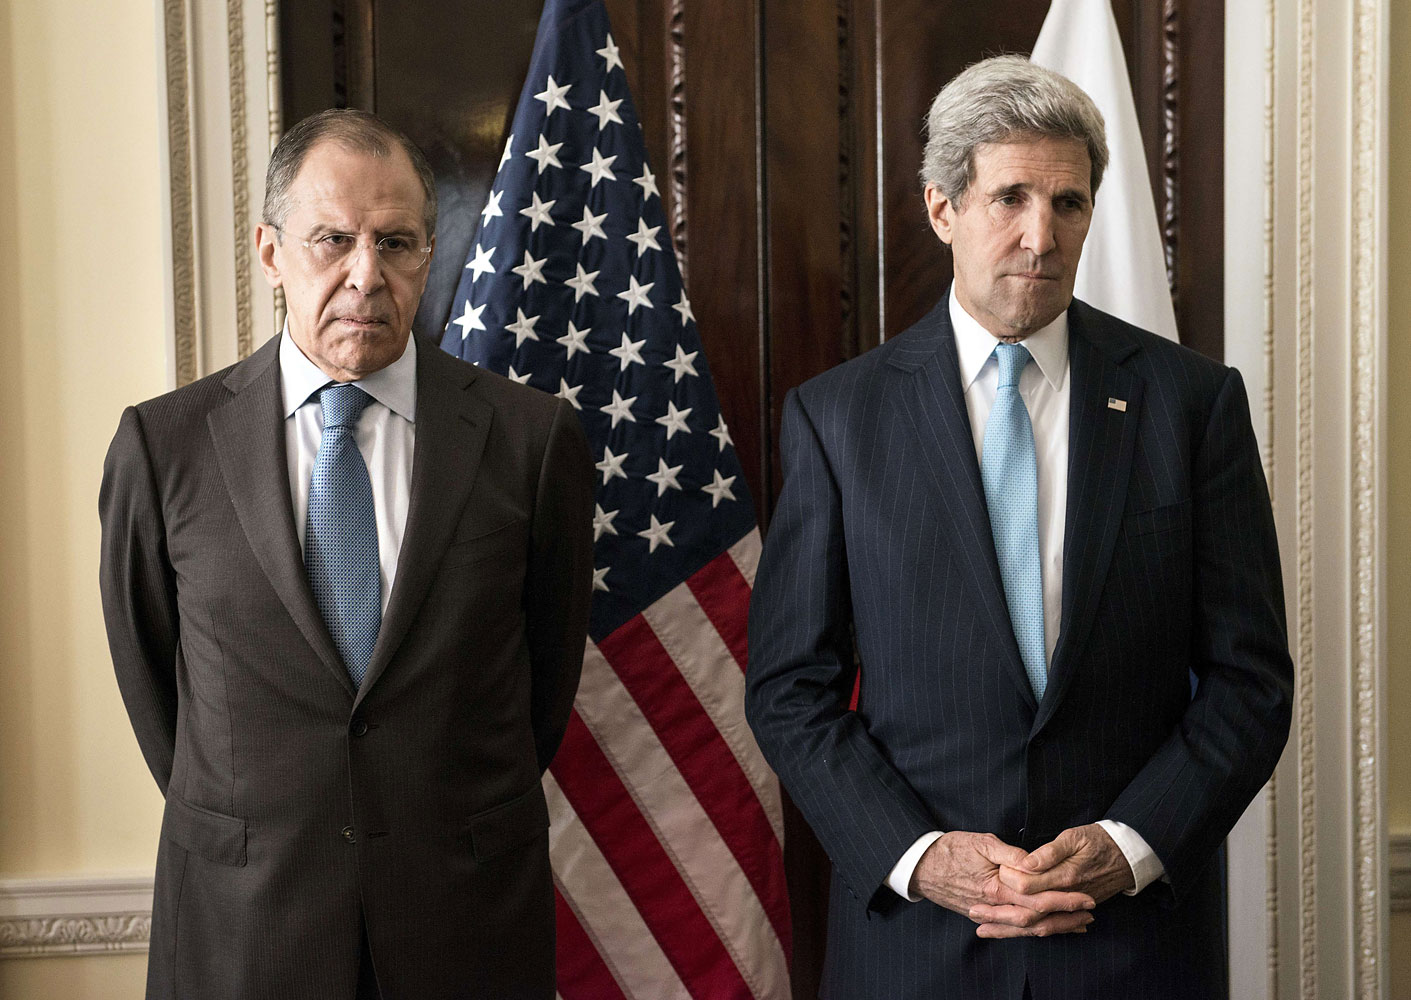 Russian Foreign Minister Sergey Lavrov (L) and US Secretary of State John Kerry stand together before a meeting at Winfield House in London on March 14, 2014.